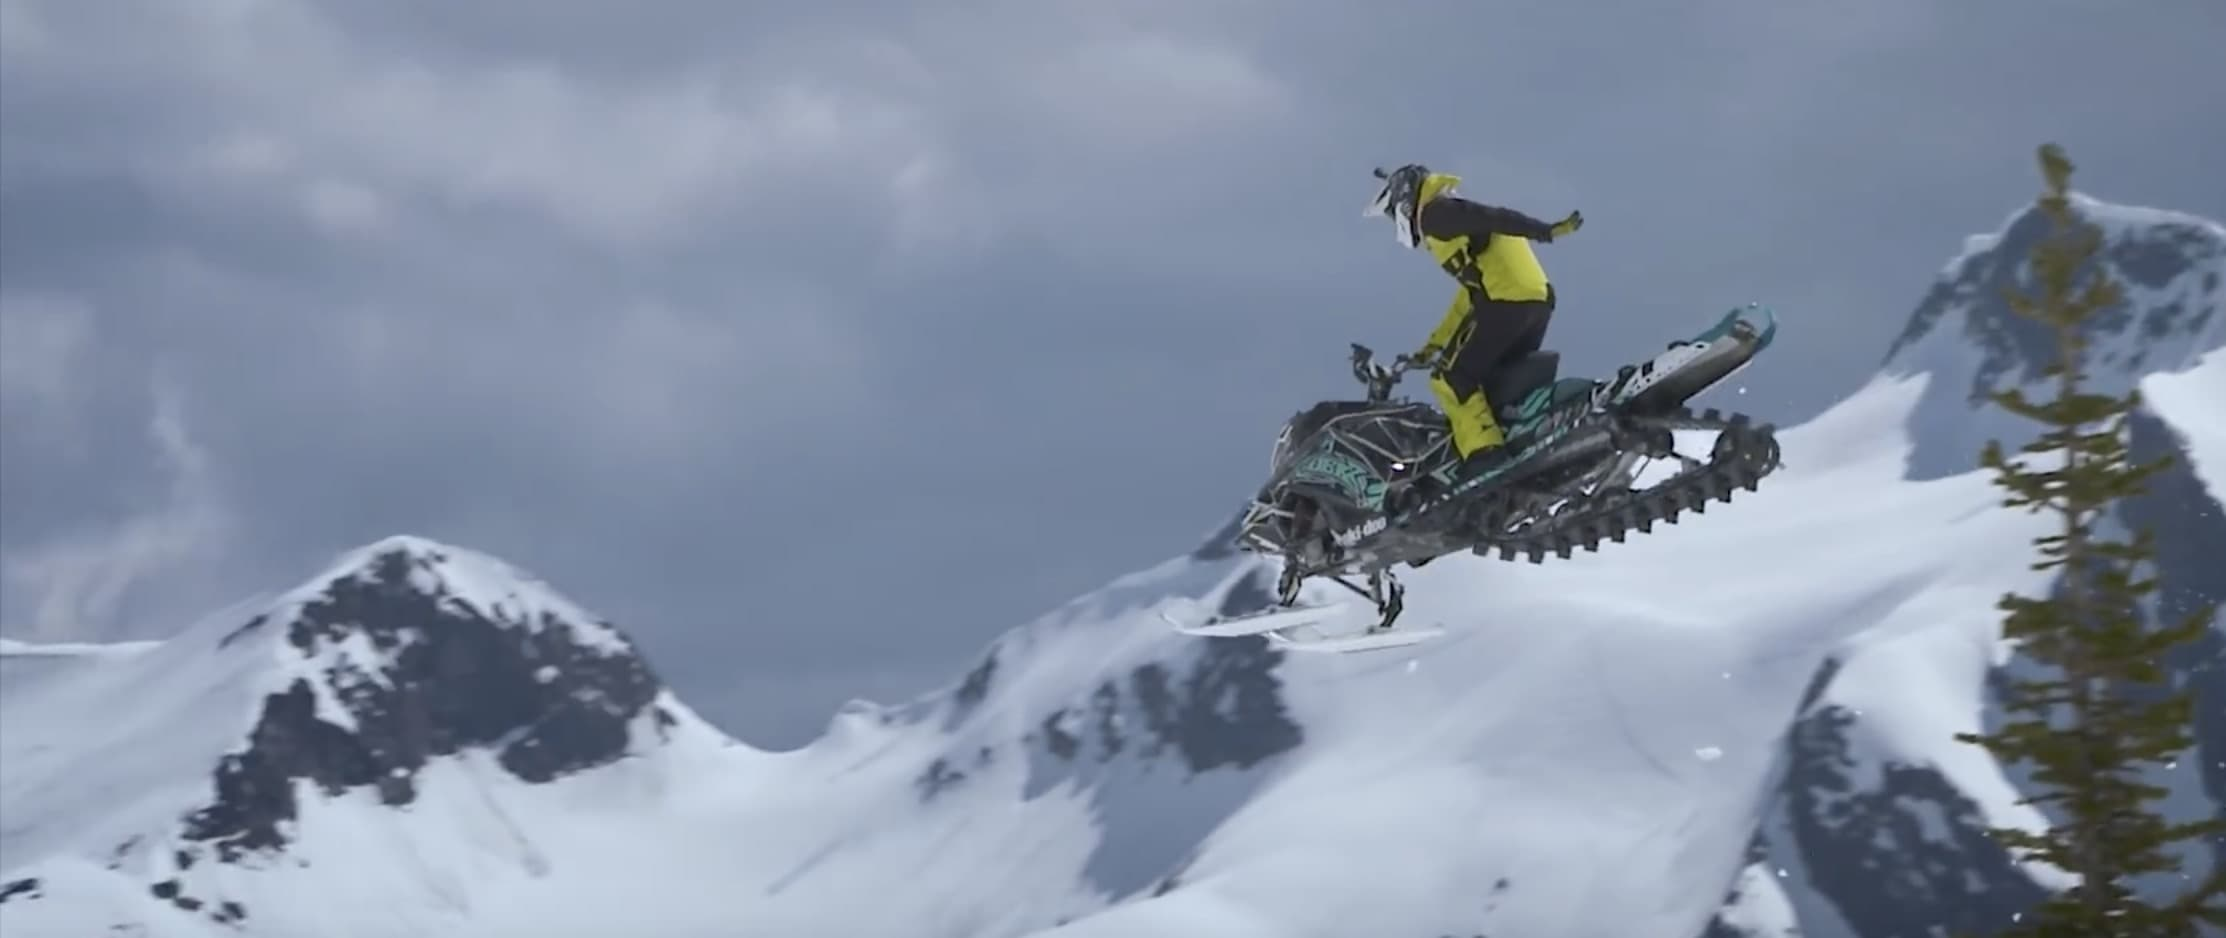 2018 Sled and Snow Bike Film Teasers